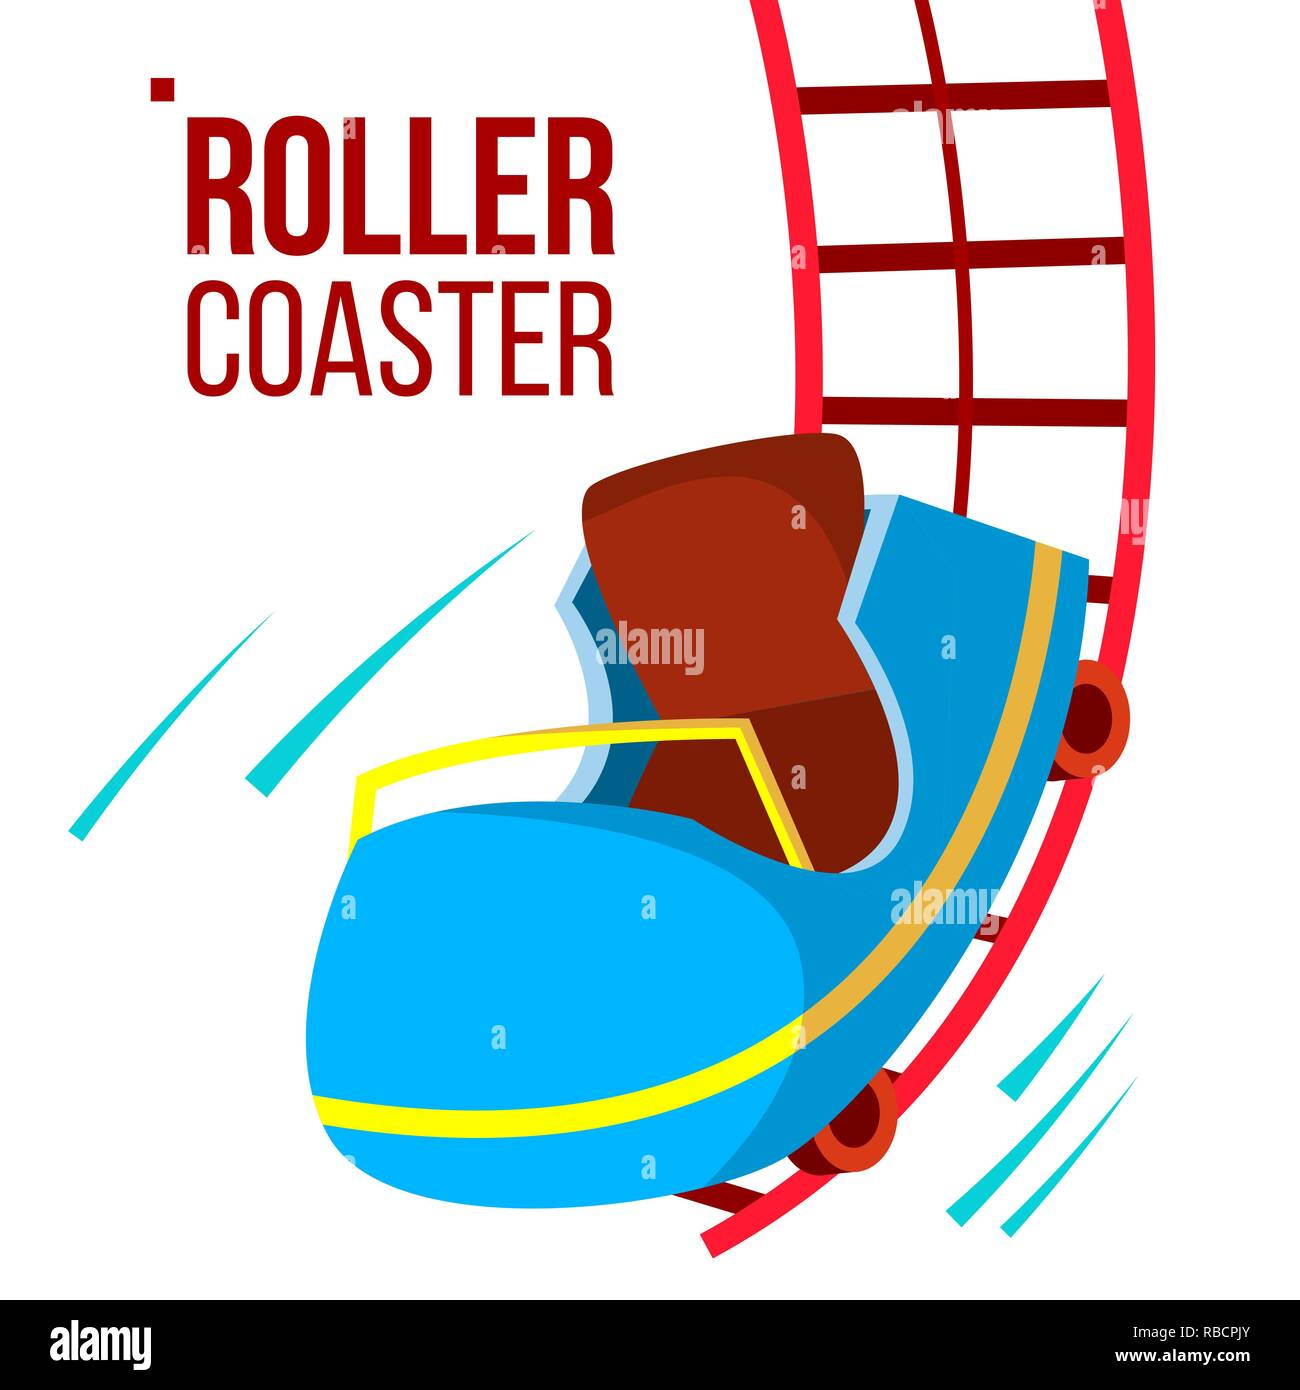 Roller Coaster Vector. Fast Ride. Mountians. Amusement Park. Fast Speed, Drive. Isolated Flat Cartoon Illustration - Stock Vector